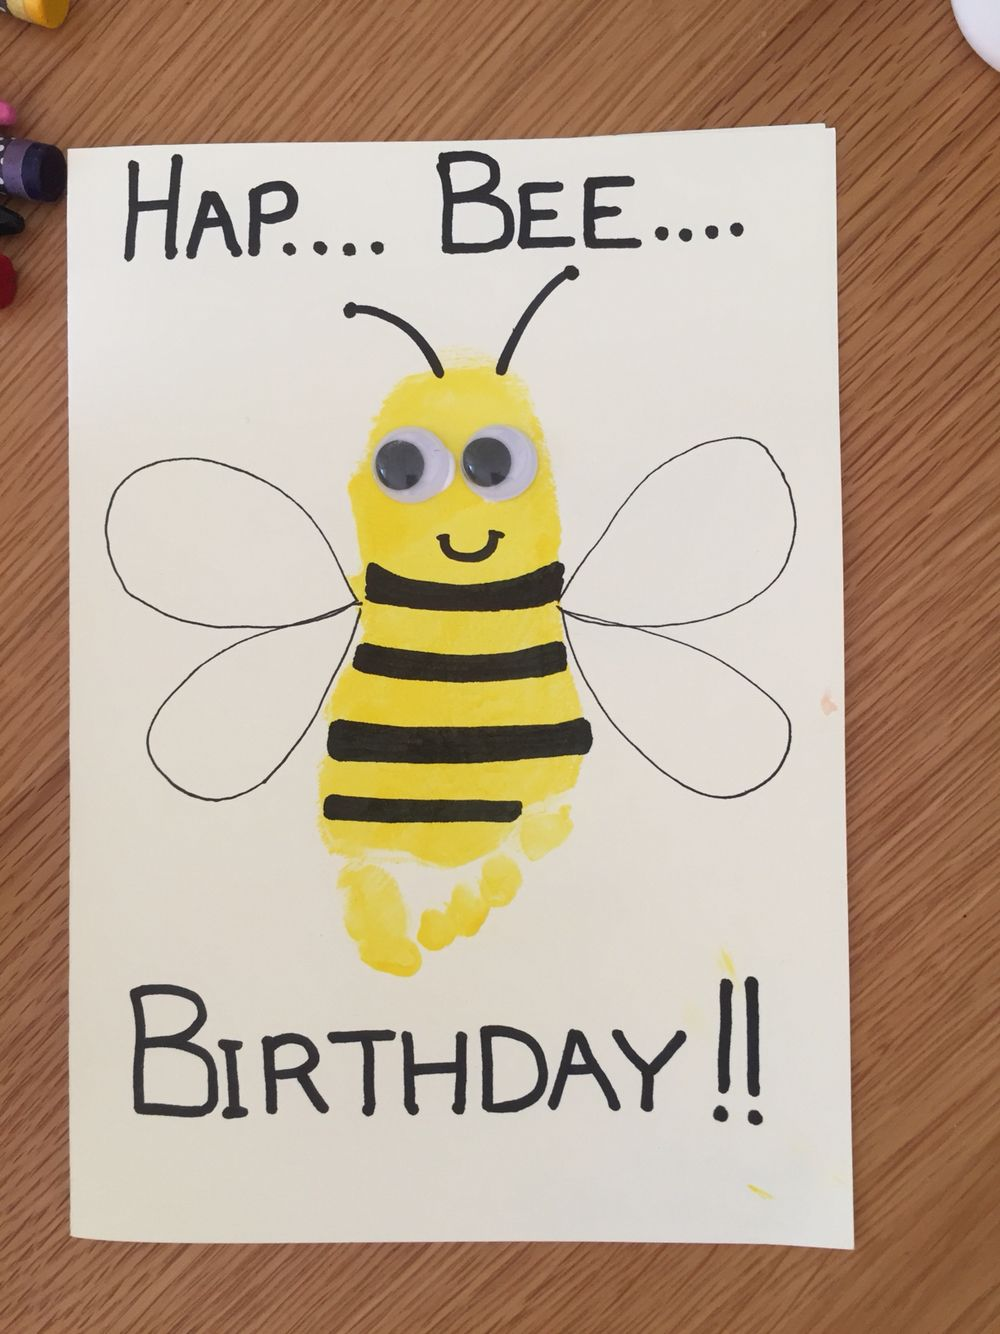 Hap Bee Birthday Card With Toddler Footprint And Googley